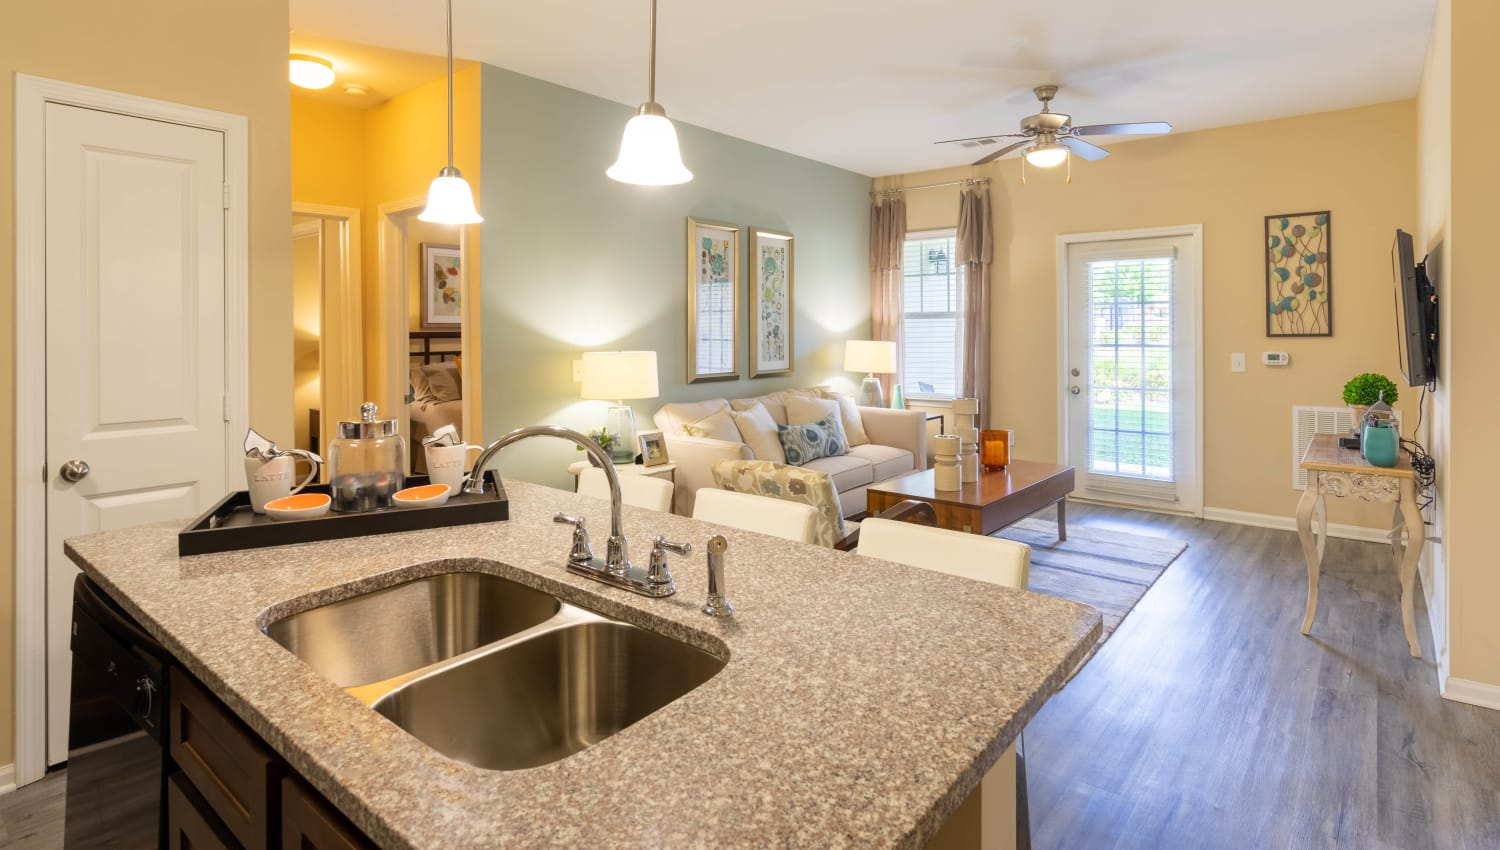 Dual-basin sink in a model home's kitchen at Legends at White Oak in Ooltewah, Tennessee